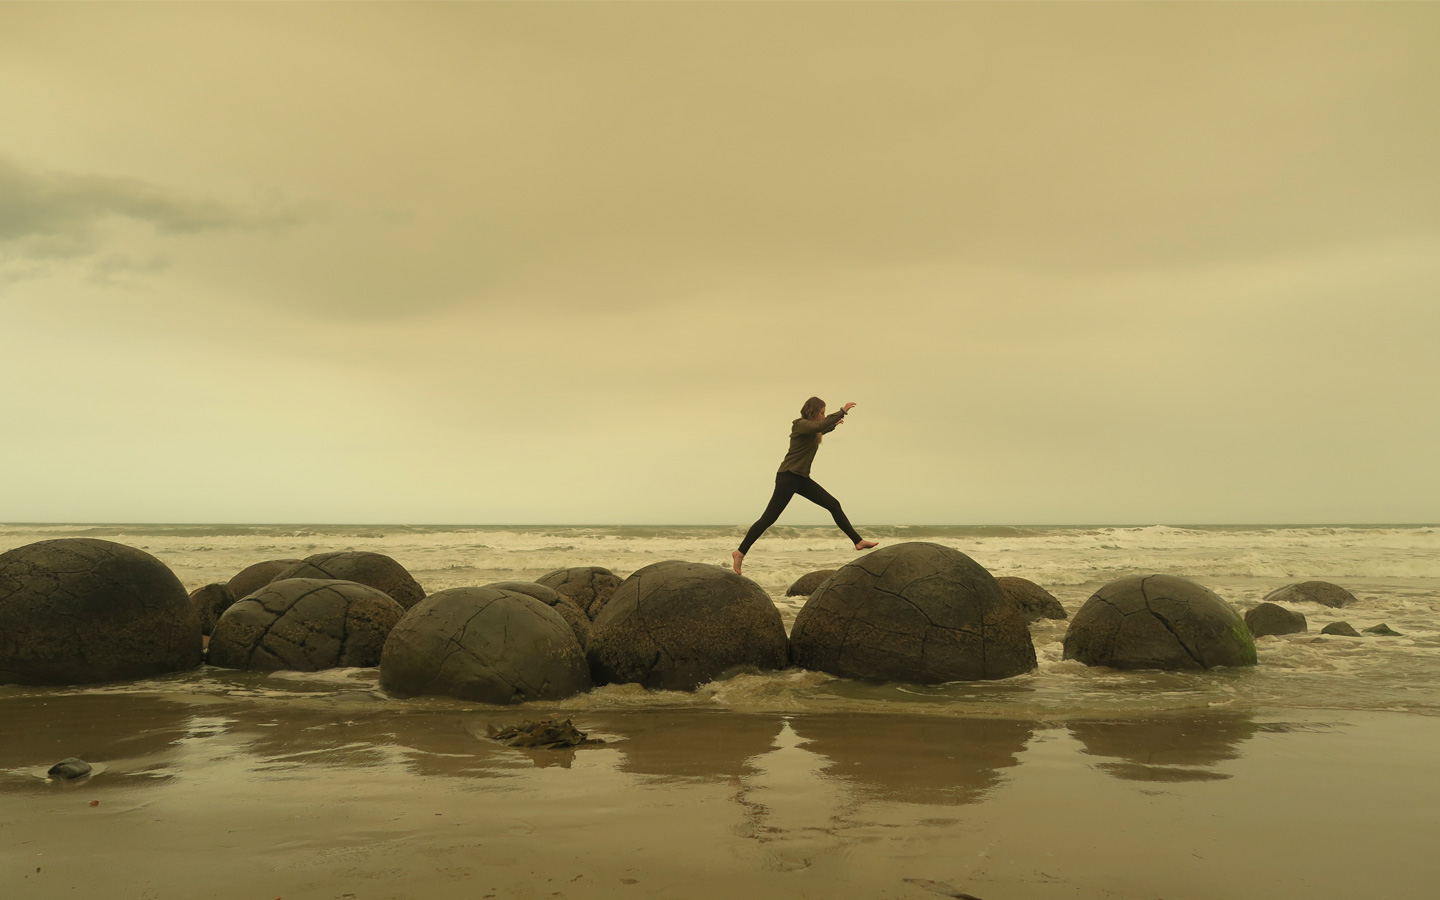 girl jumping on moeraki boulders in new zealand